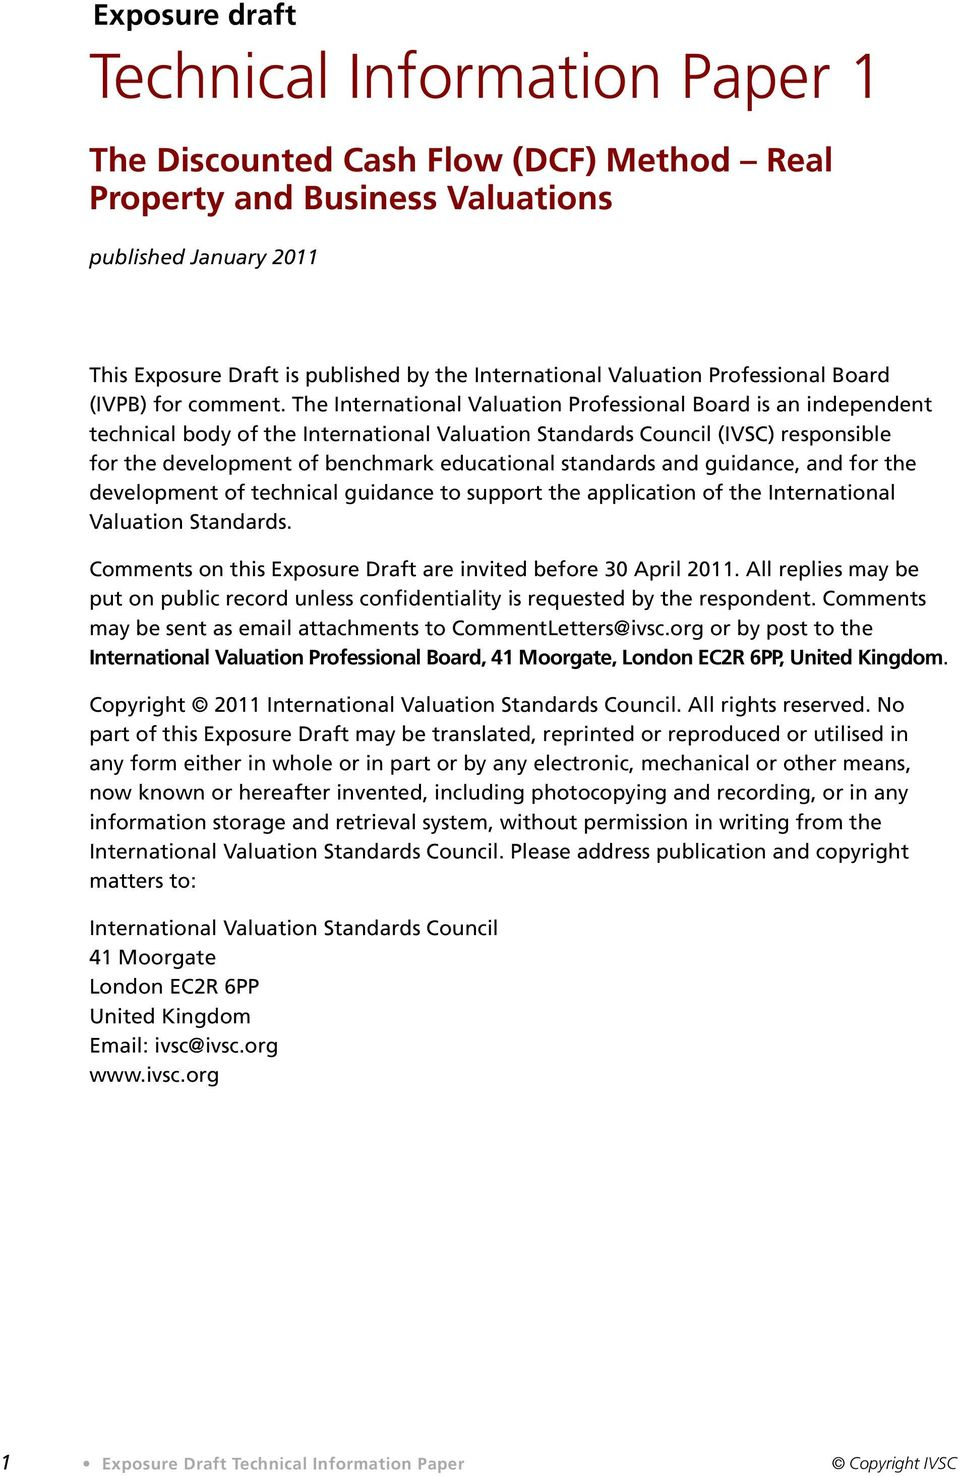 The International Valuation Professional Board is an independent technical body of the International Valuation Standards Council (IVSC) responsible for the development of benchmark educational